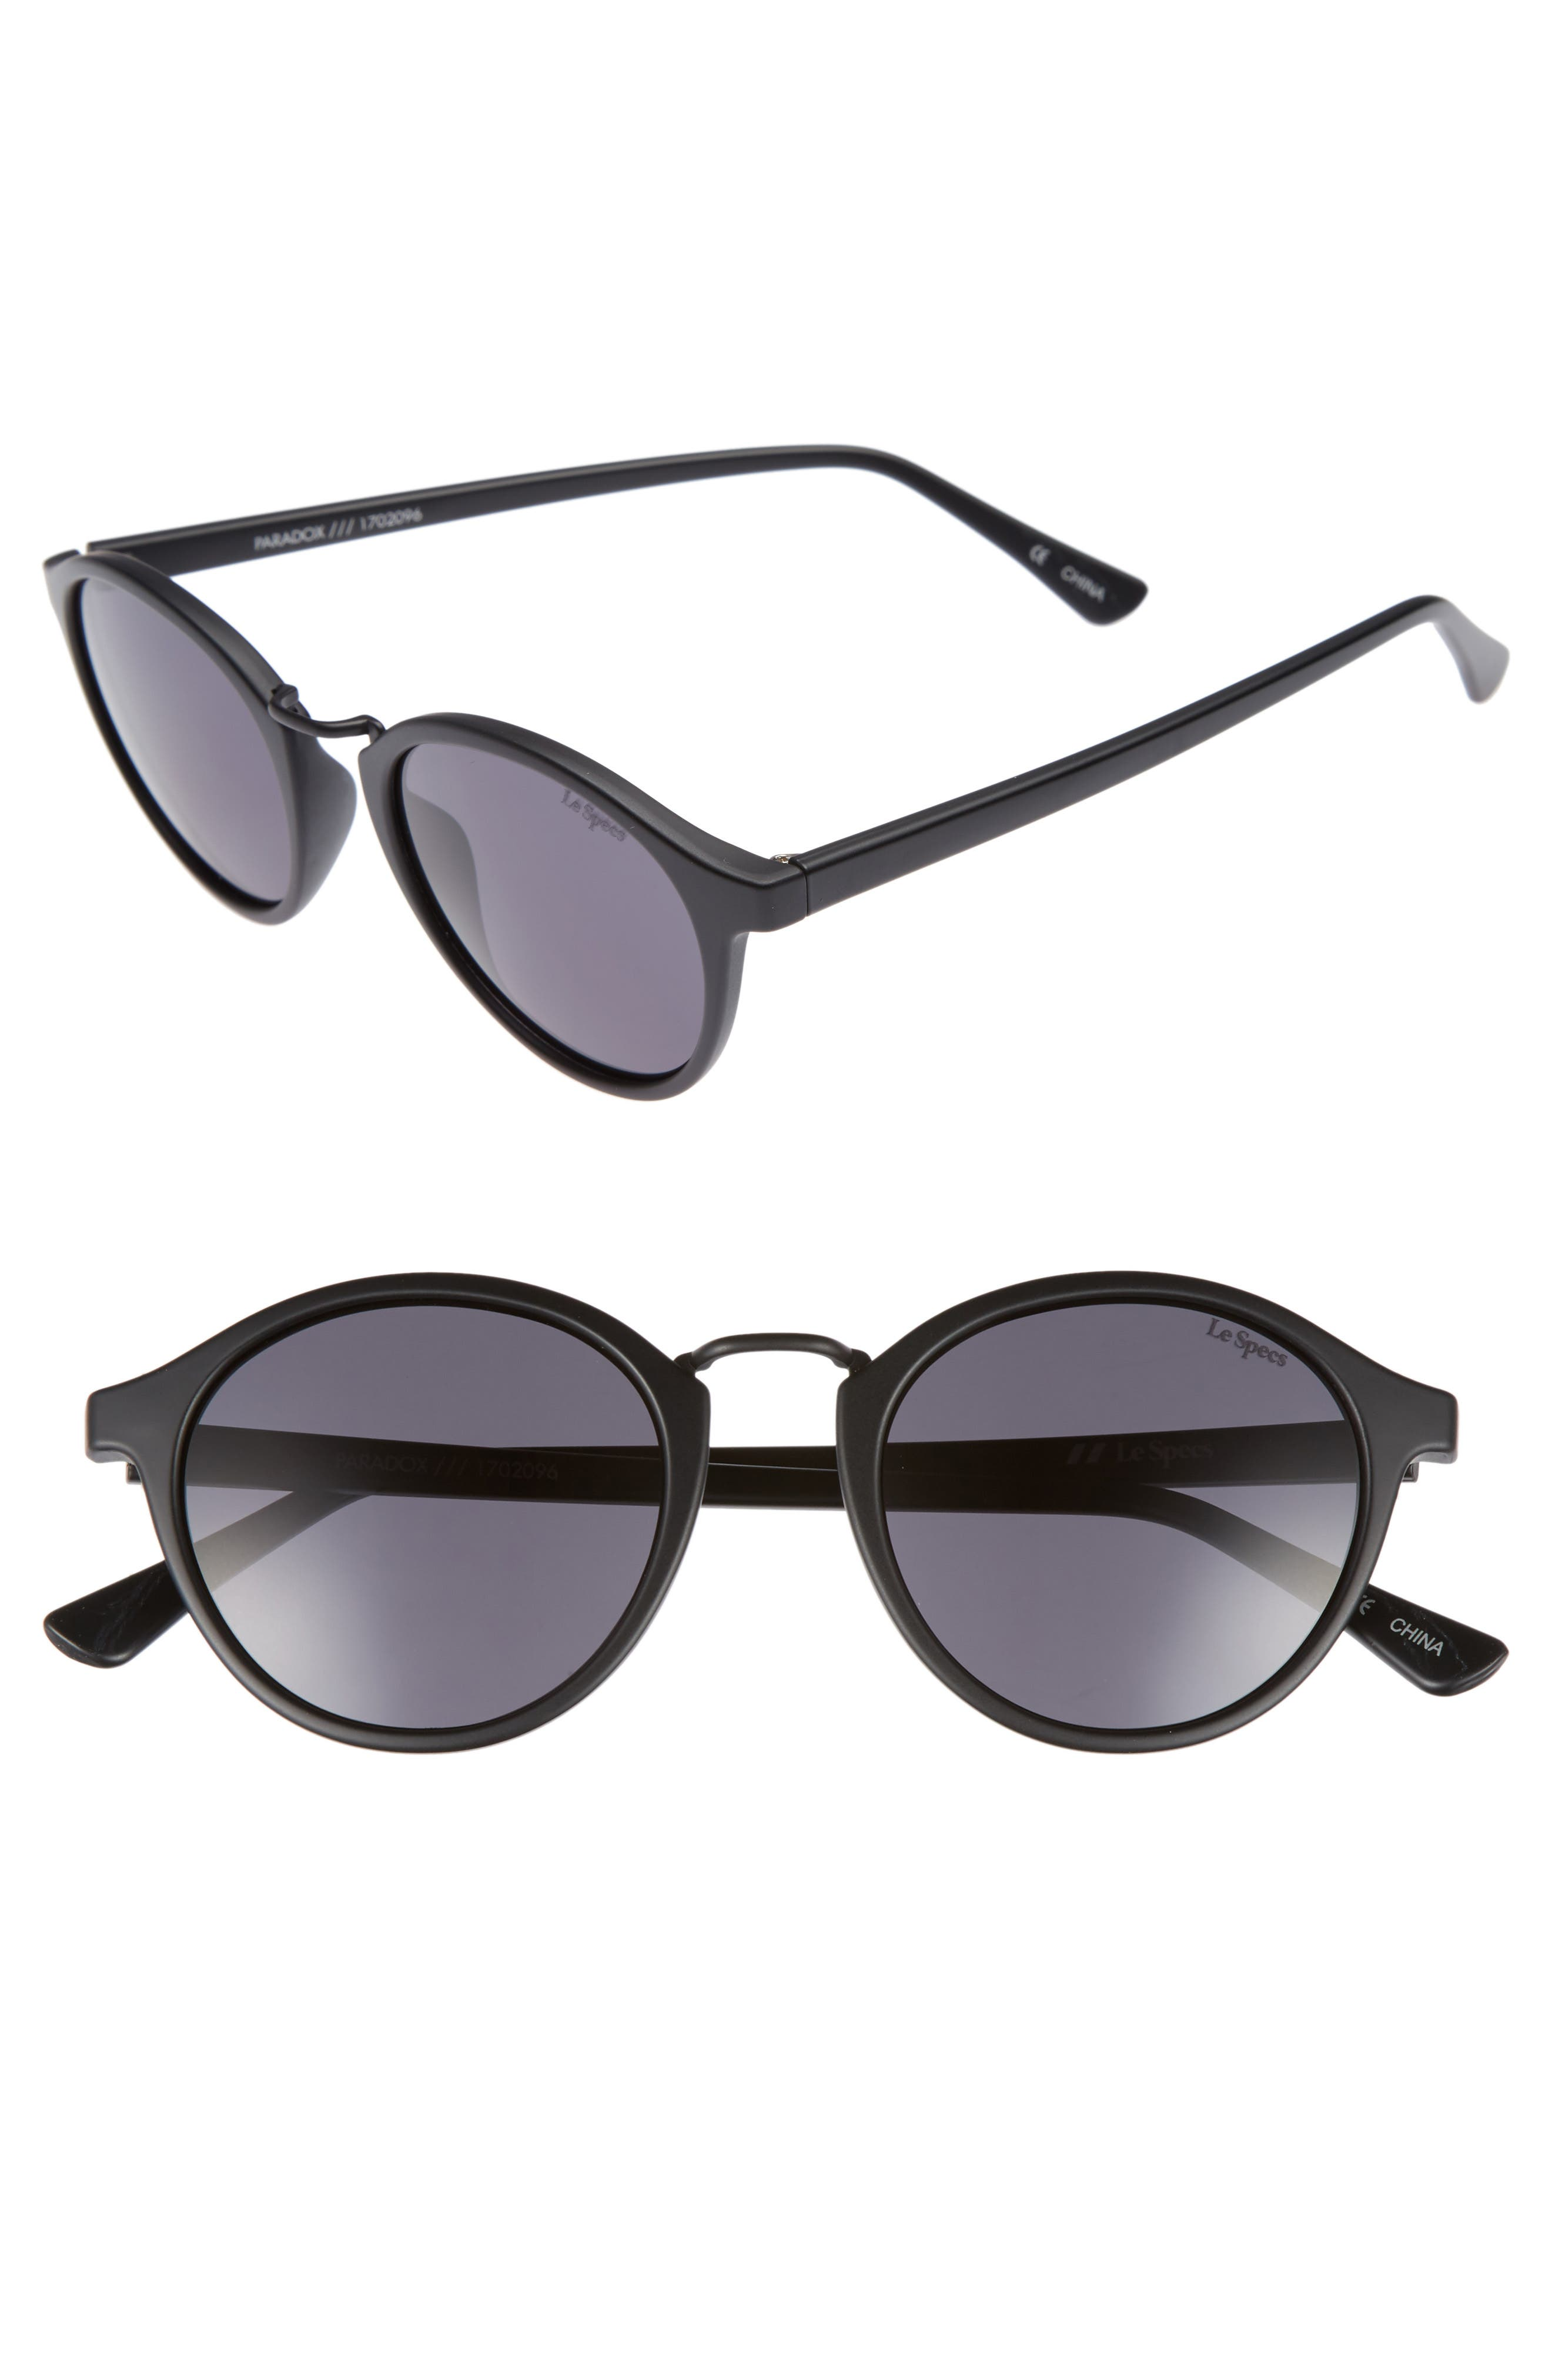 Paradox 49mm Oval Sunglasses,                         Main,                         color, 001